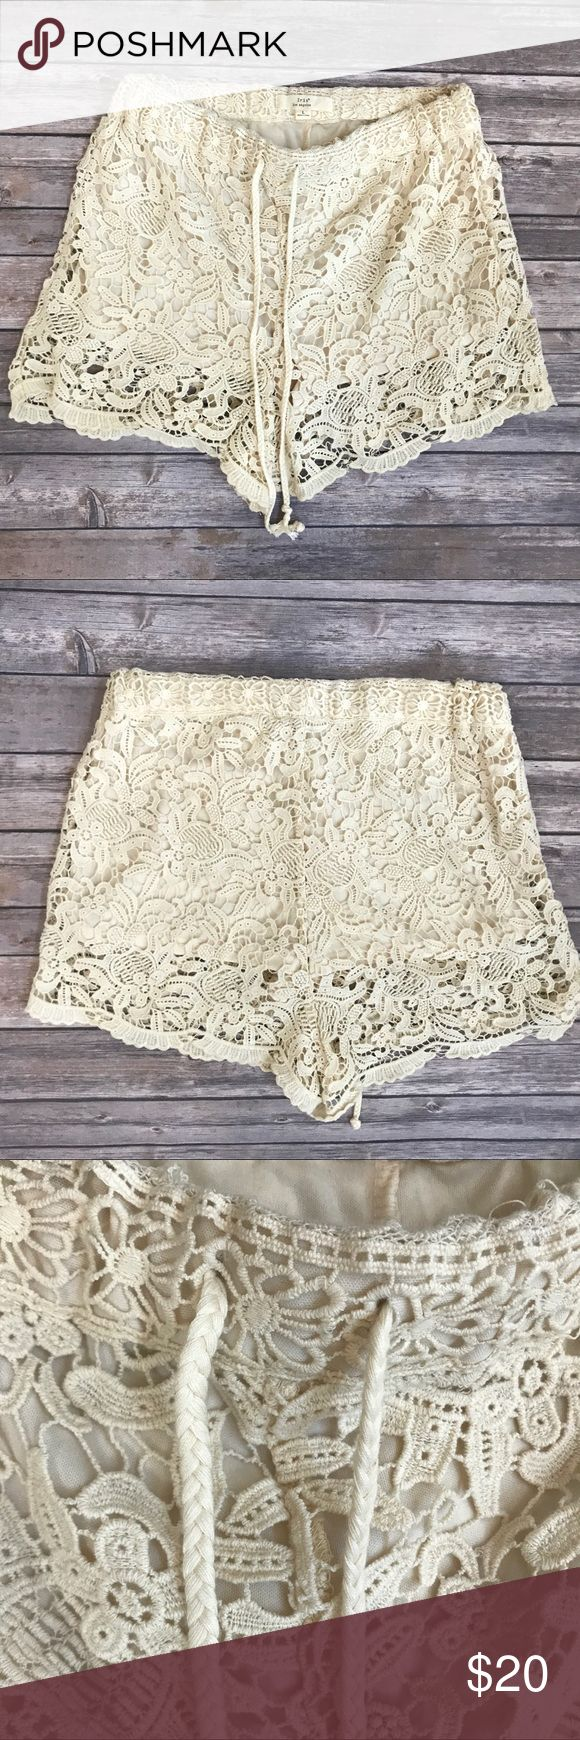 "Lace overlay festival summer shorts boho Sz large NEW Iris Los Angeles Womens Cream Shorts Lace Crochet Festival Knit Sz L NWOT  Iris Los Angeles NEW without tags   Decorative Layer Knit Shorts   Elastic Waist, Drawstring Front   FEATURES  Color: Peach  Size: Large  Waist: 15"" drawstring  Rise: 13""  Length(middle waist to hem): 15.5""  Inseam: 3""   CONTENT  Shell 1 - 100% Cotton  Shell 2 - 100% Polyester iris los angeles Shorts"